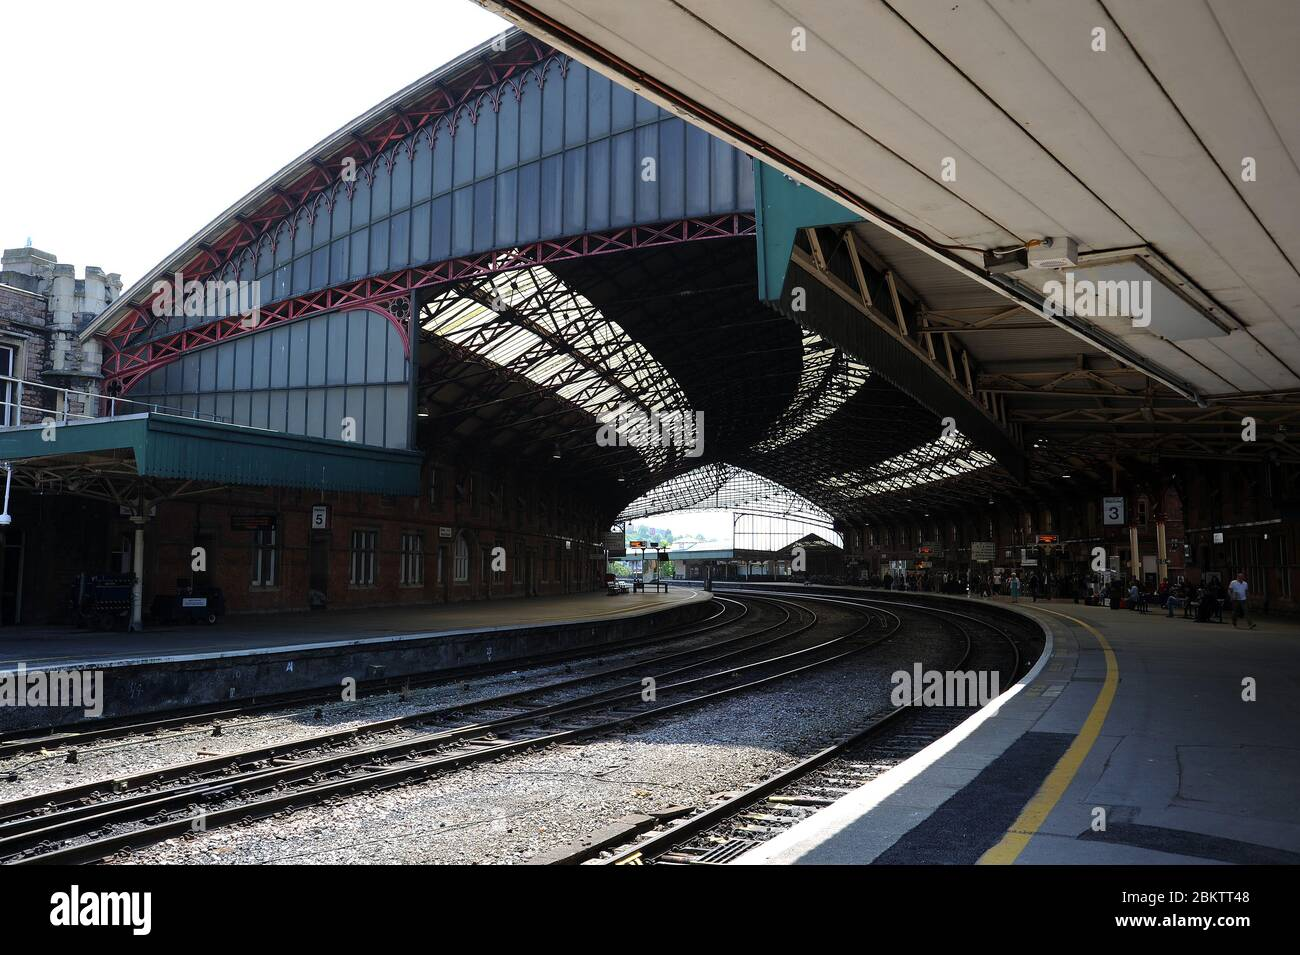 Looking west along platform 3 of Bristol Temple Meads Station. Stock Photo